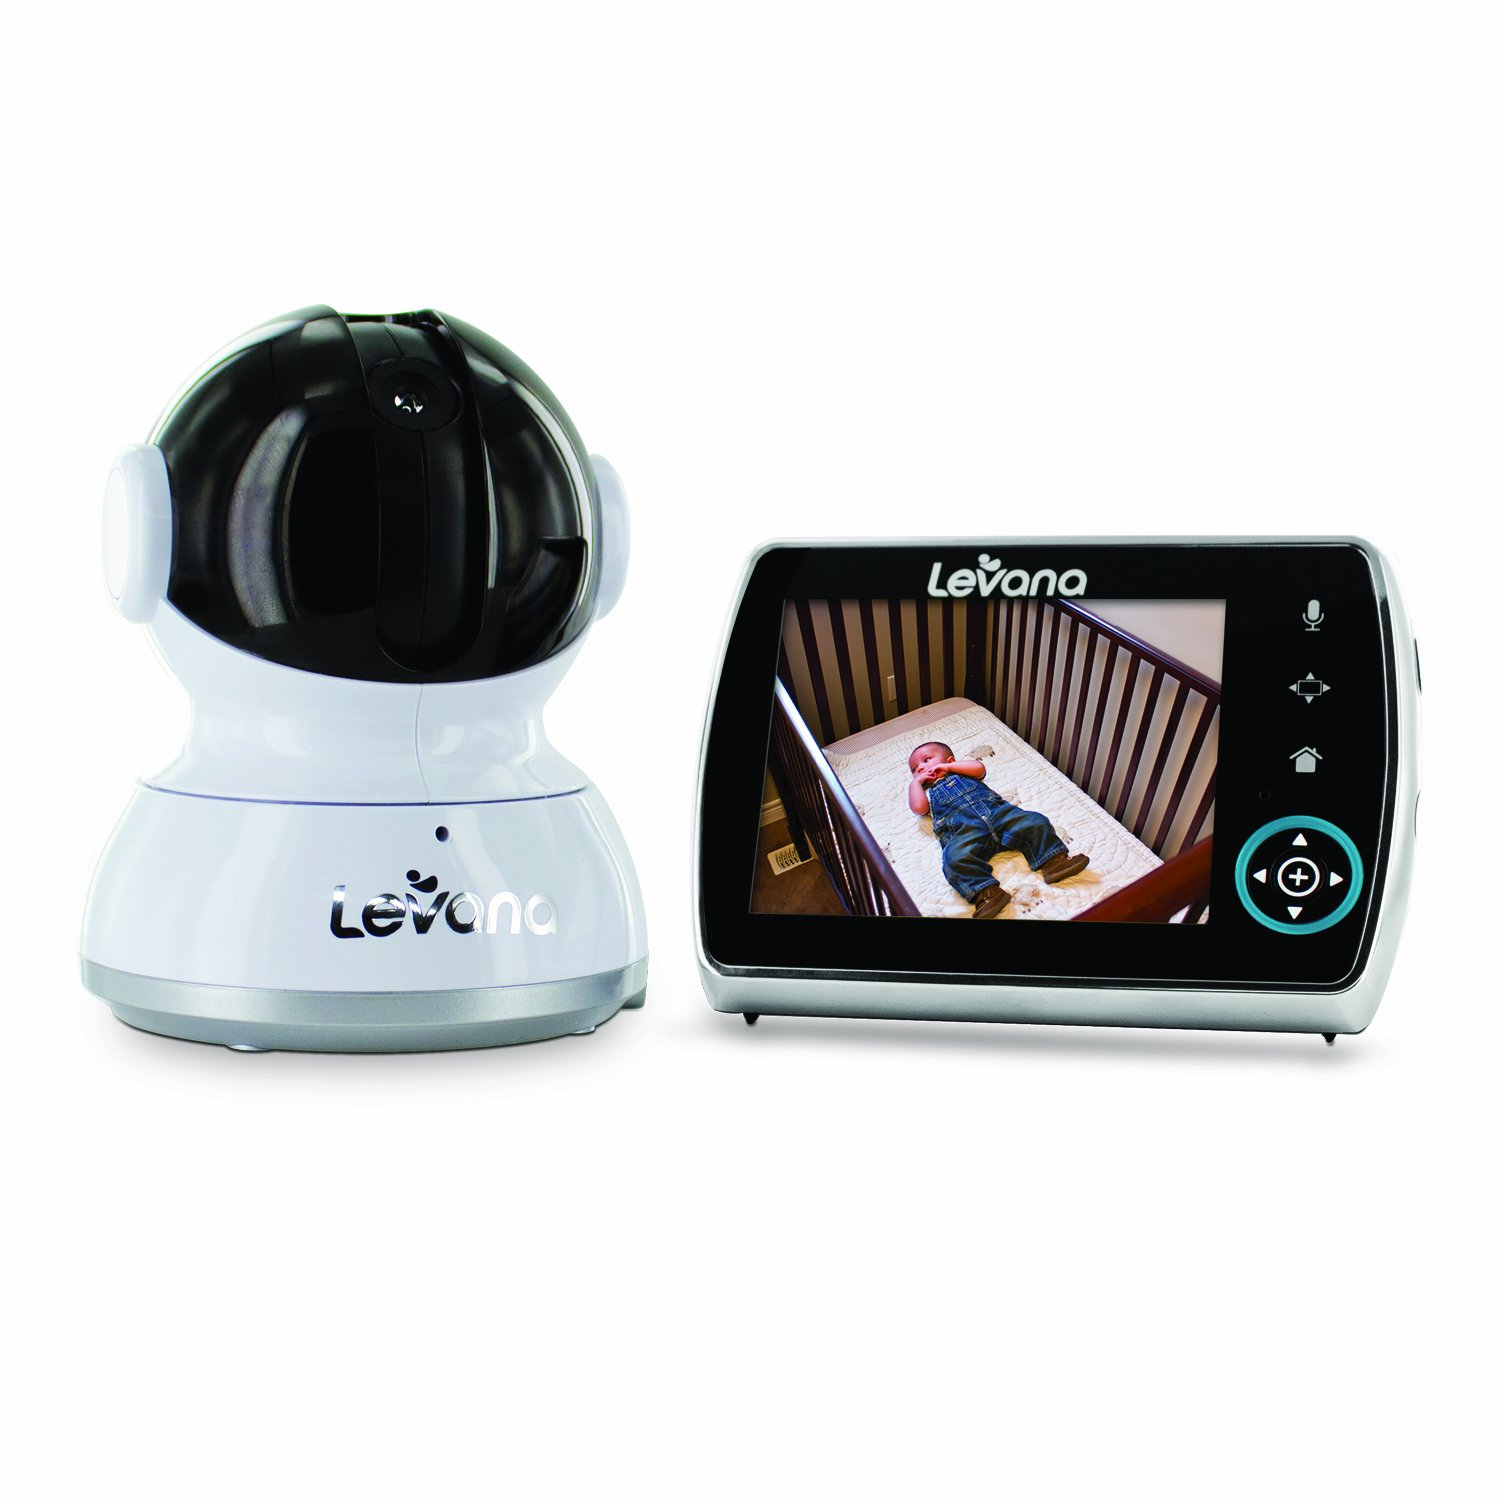 Levana Keera 32012 Remote Controlled Pan/Tilt/Zoom Camera